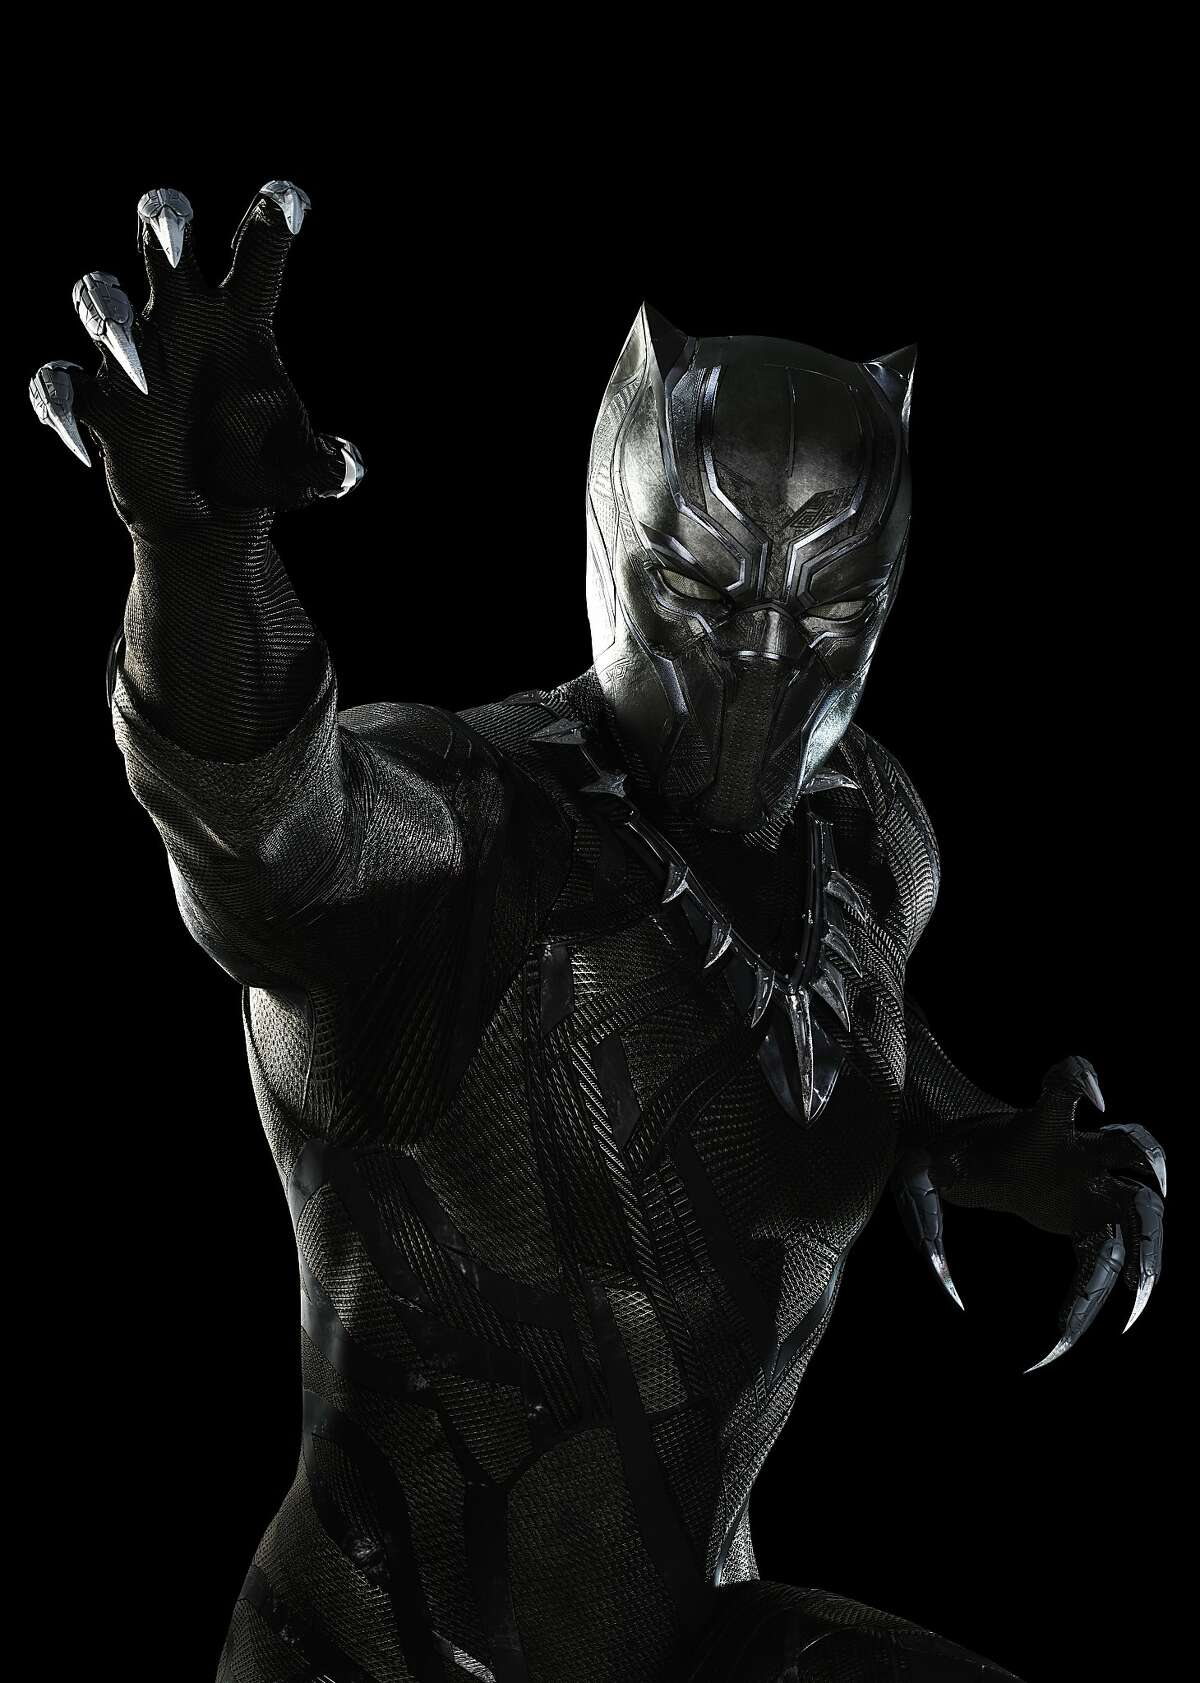 Marvel's Captain America: Civil War..Black Panther/T'Challa (Chadwick Boseman)..Photo Credit: Zade Rosenthal, Marvel 2016